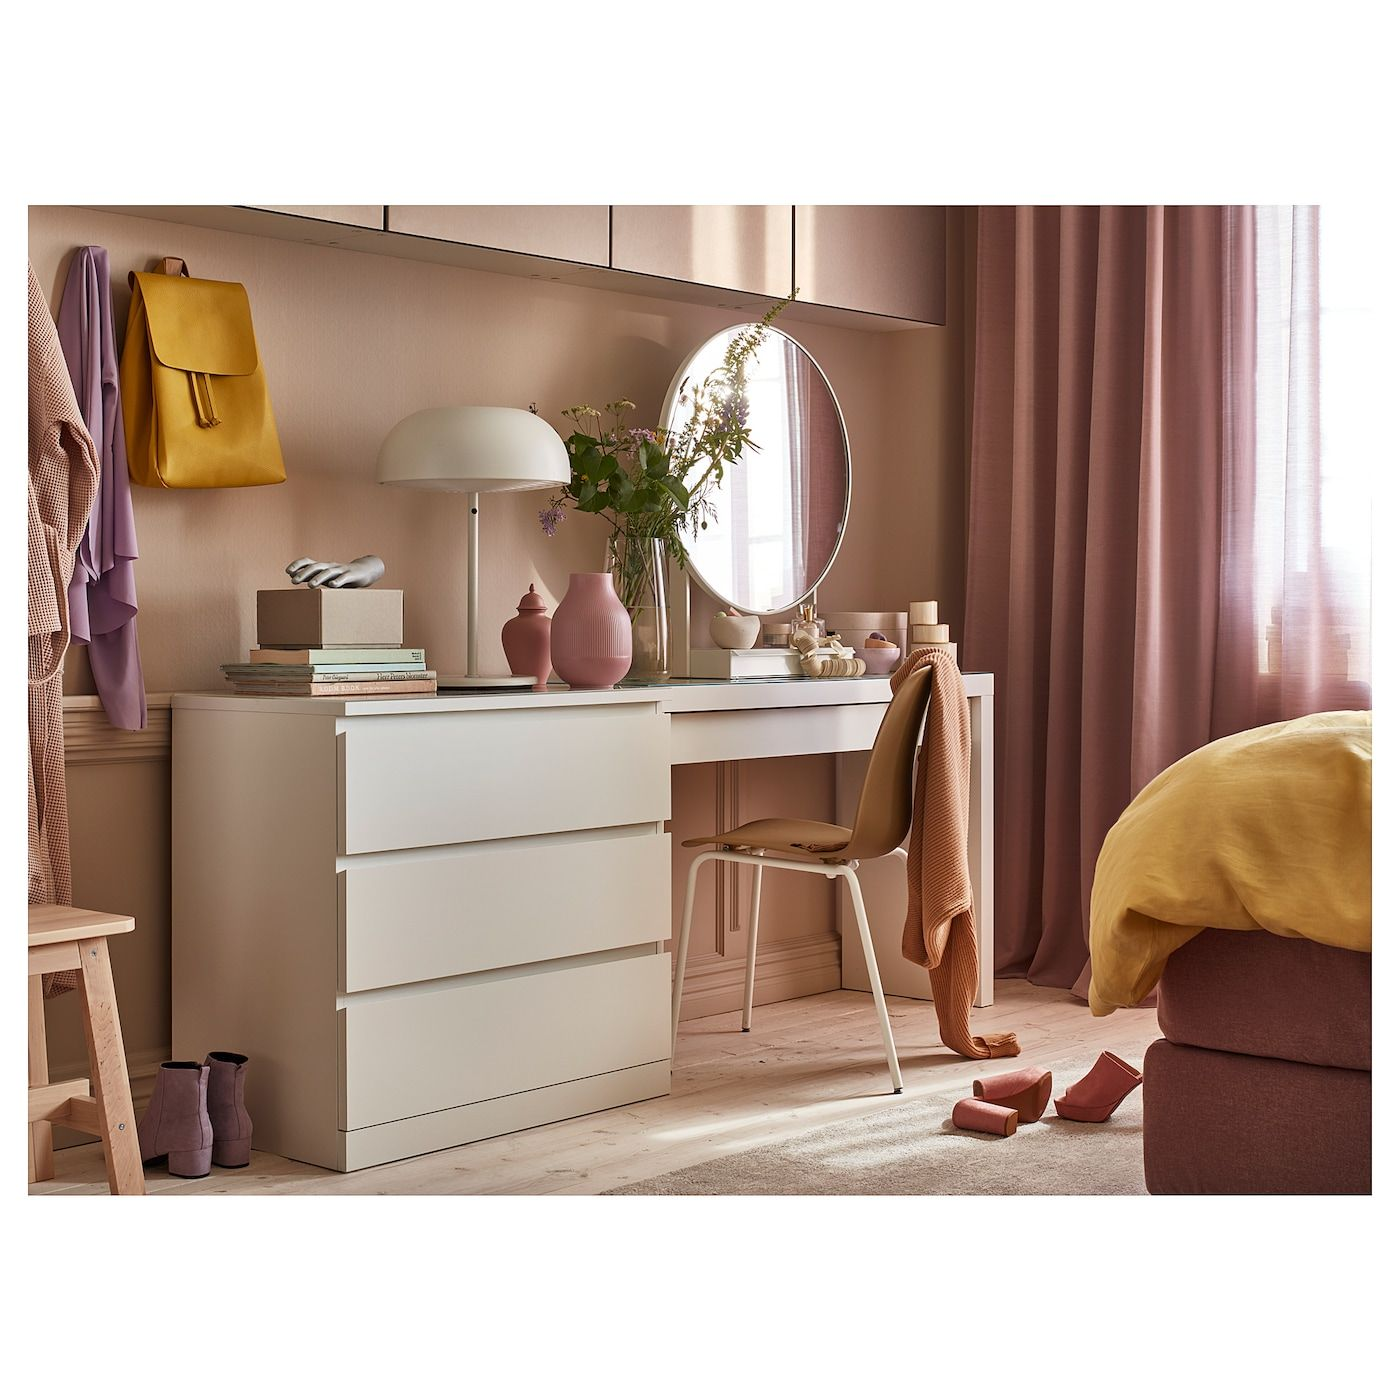 Malm Tocador Blanco 120x41 Cm Ikea Ikea Malm Dressing Table Malm Dressing Table Ikea Dressing Table